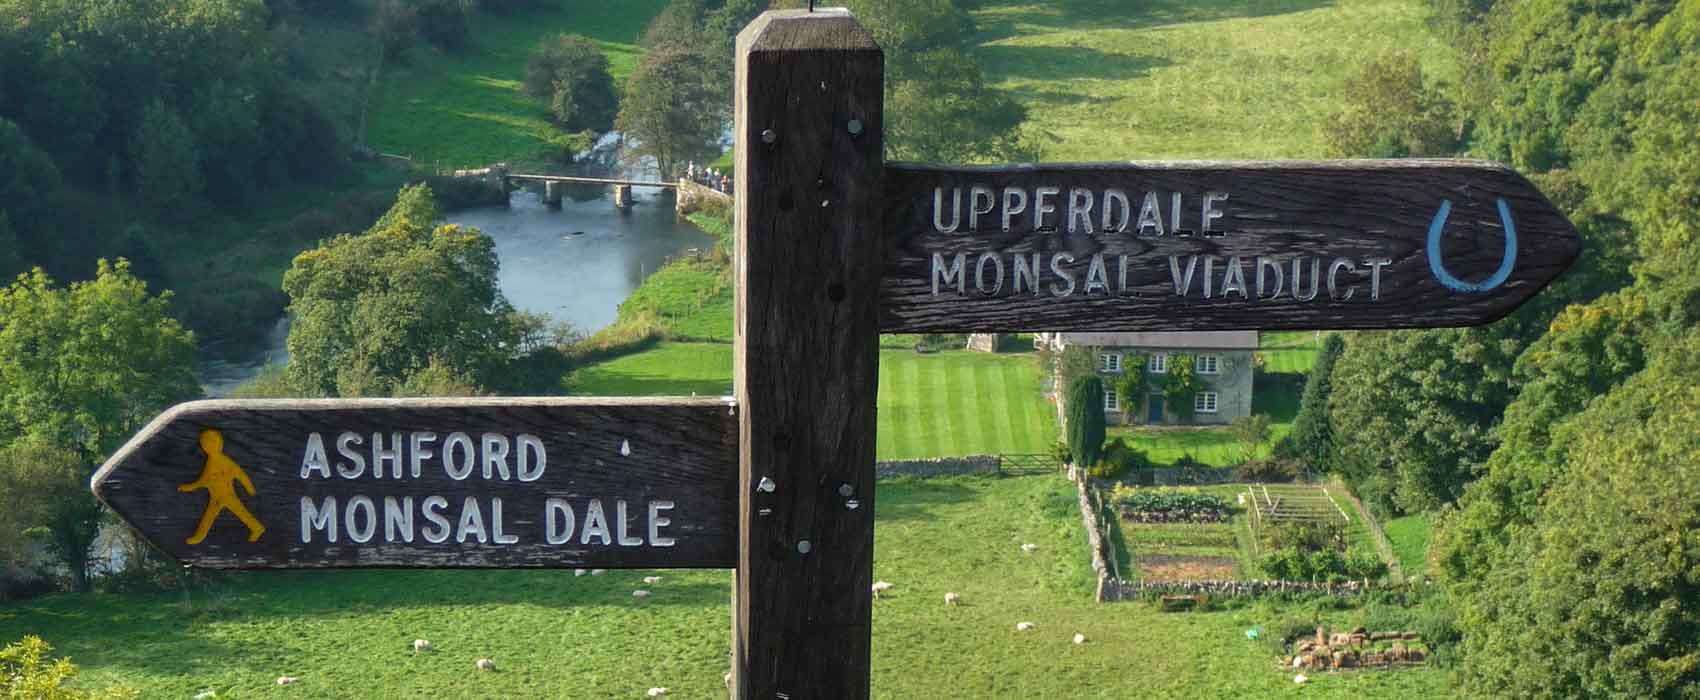 Monsal Dale sign post with fields and river in background